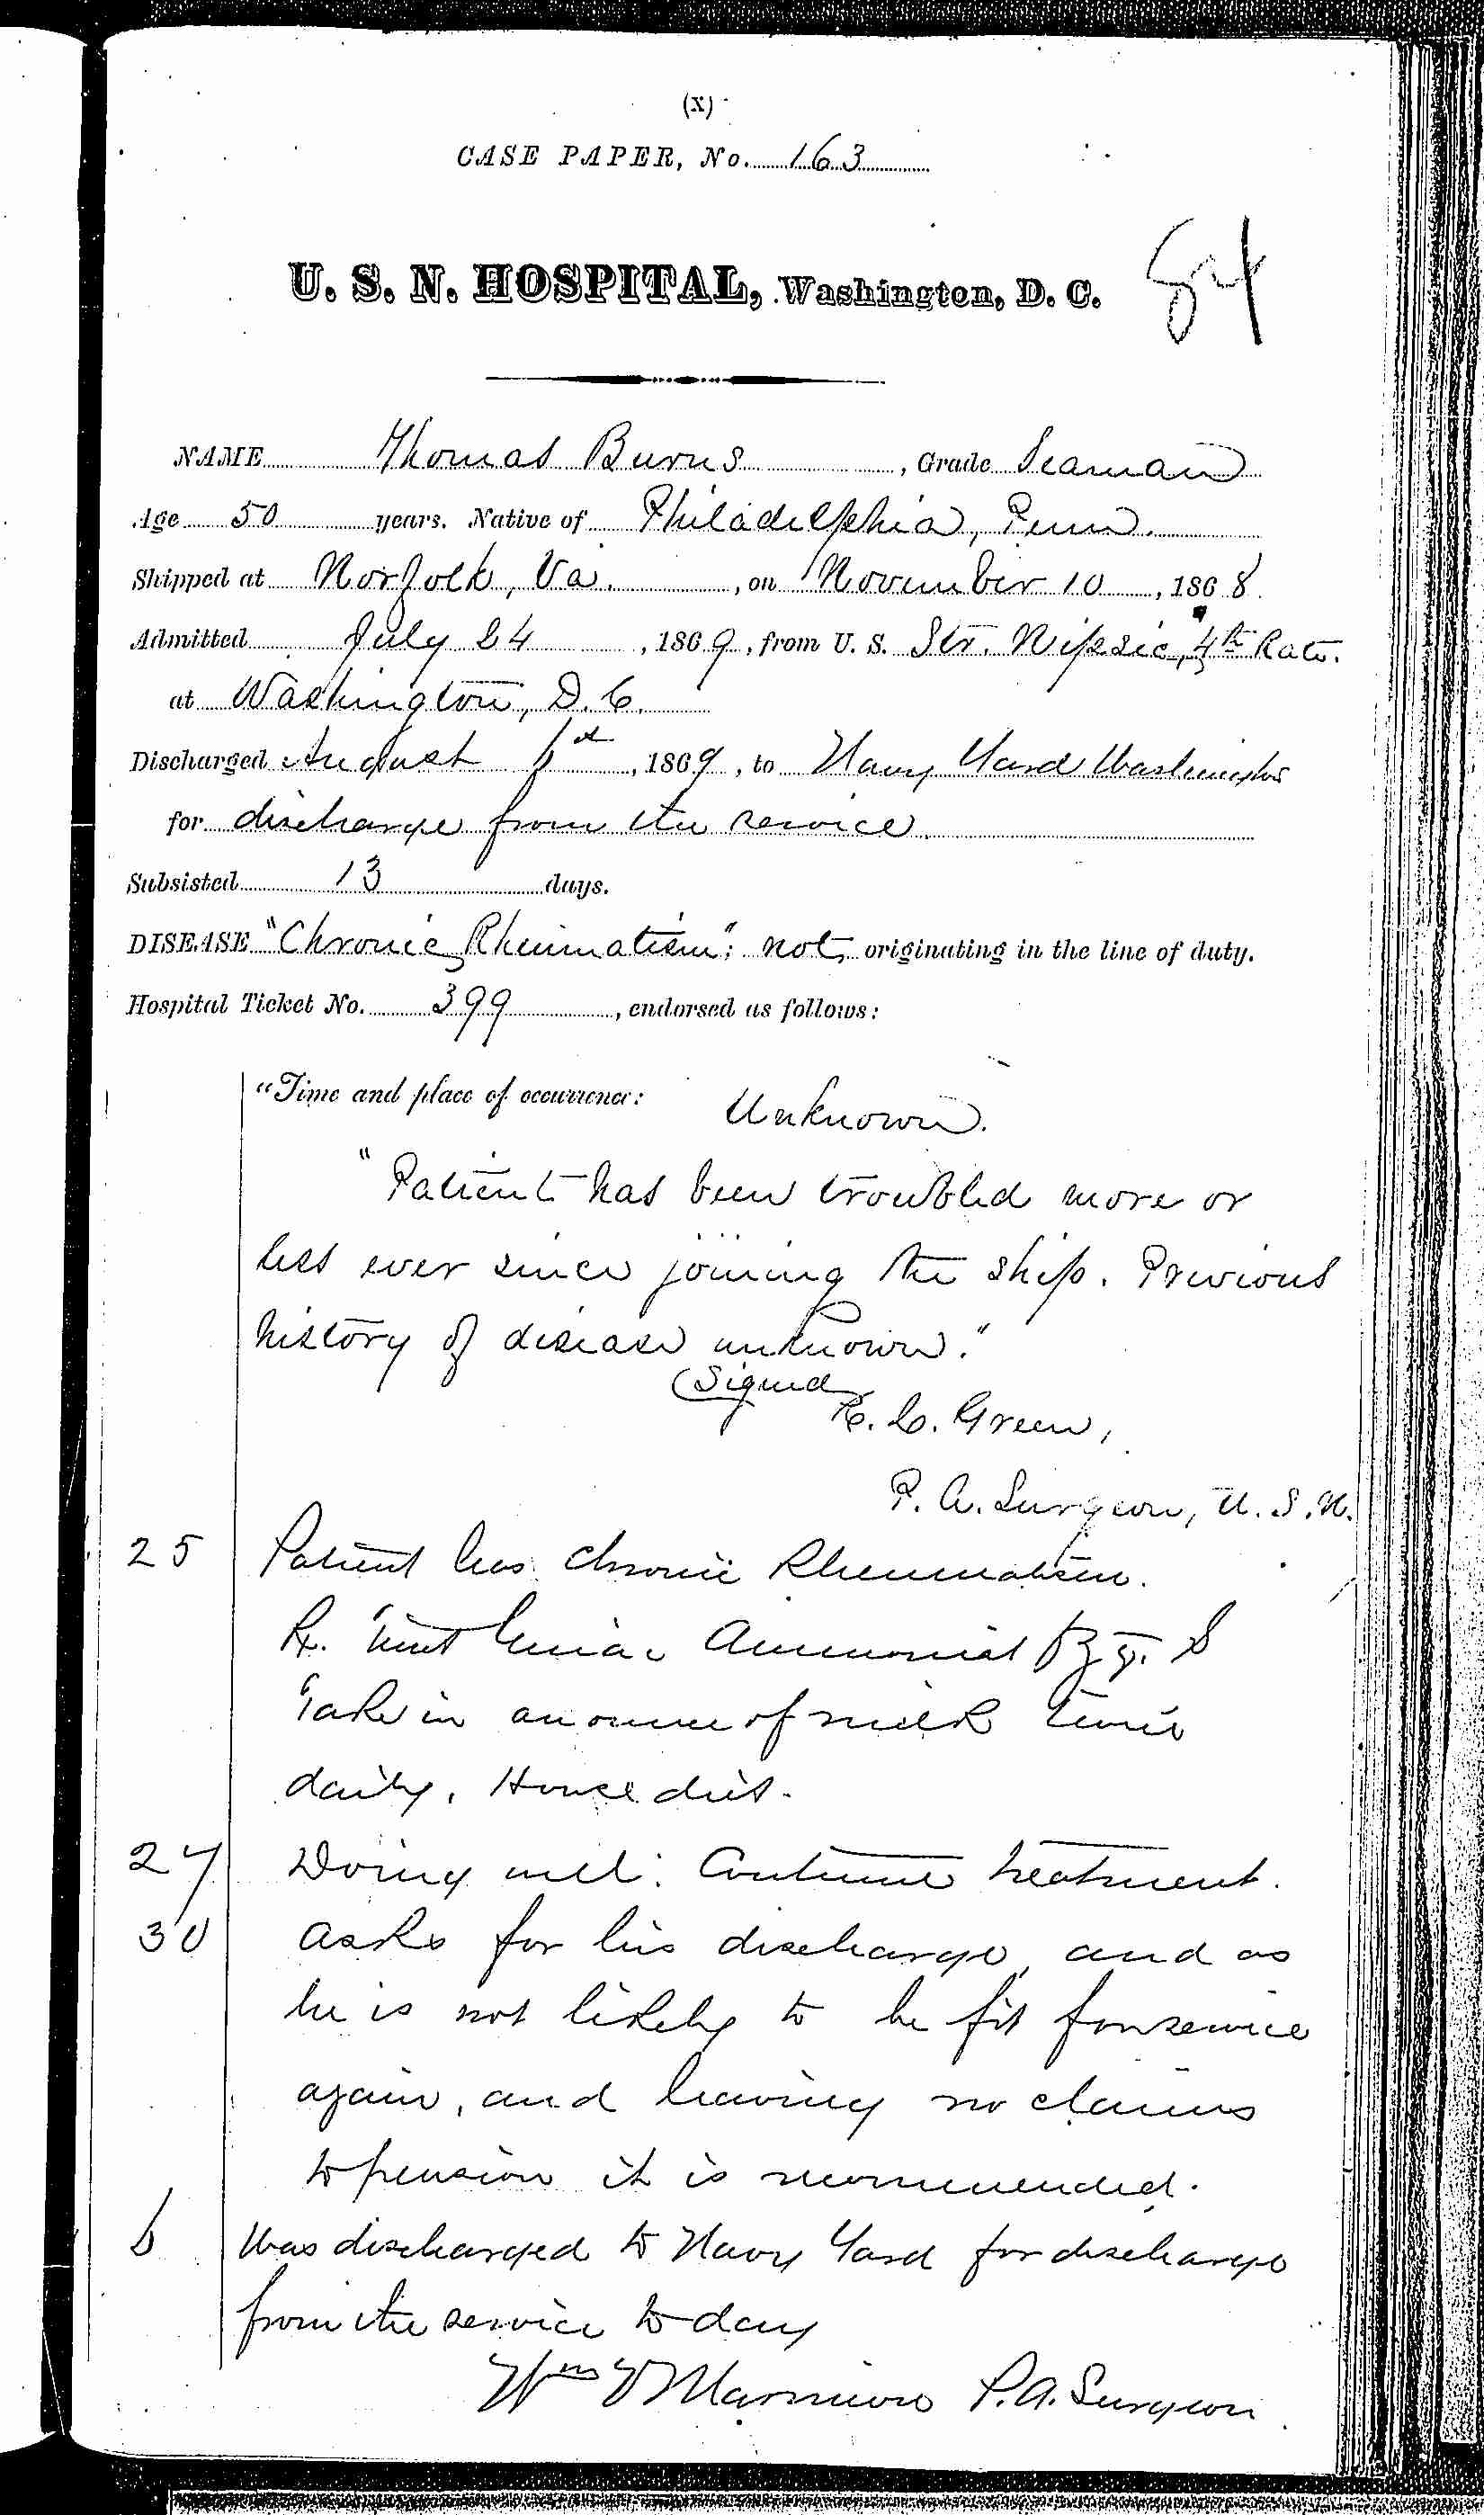 Entry for Thomas Burns (page 1 of 1) in the log Hospital Tickets and Case Papers - Naval Hospital - Washington, D.C. - 1868-69